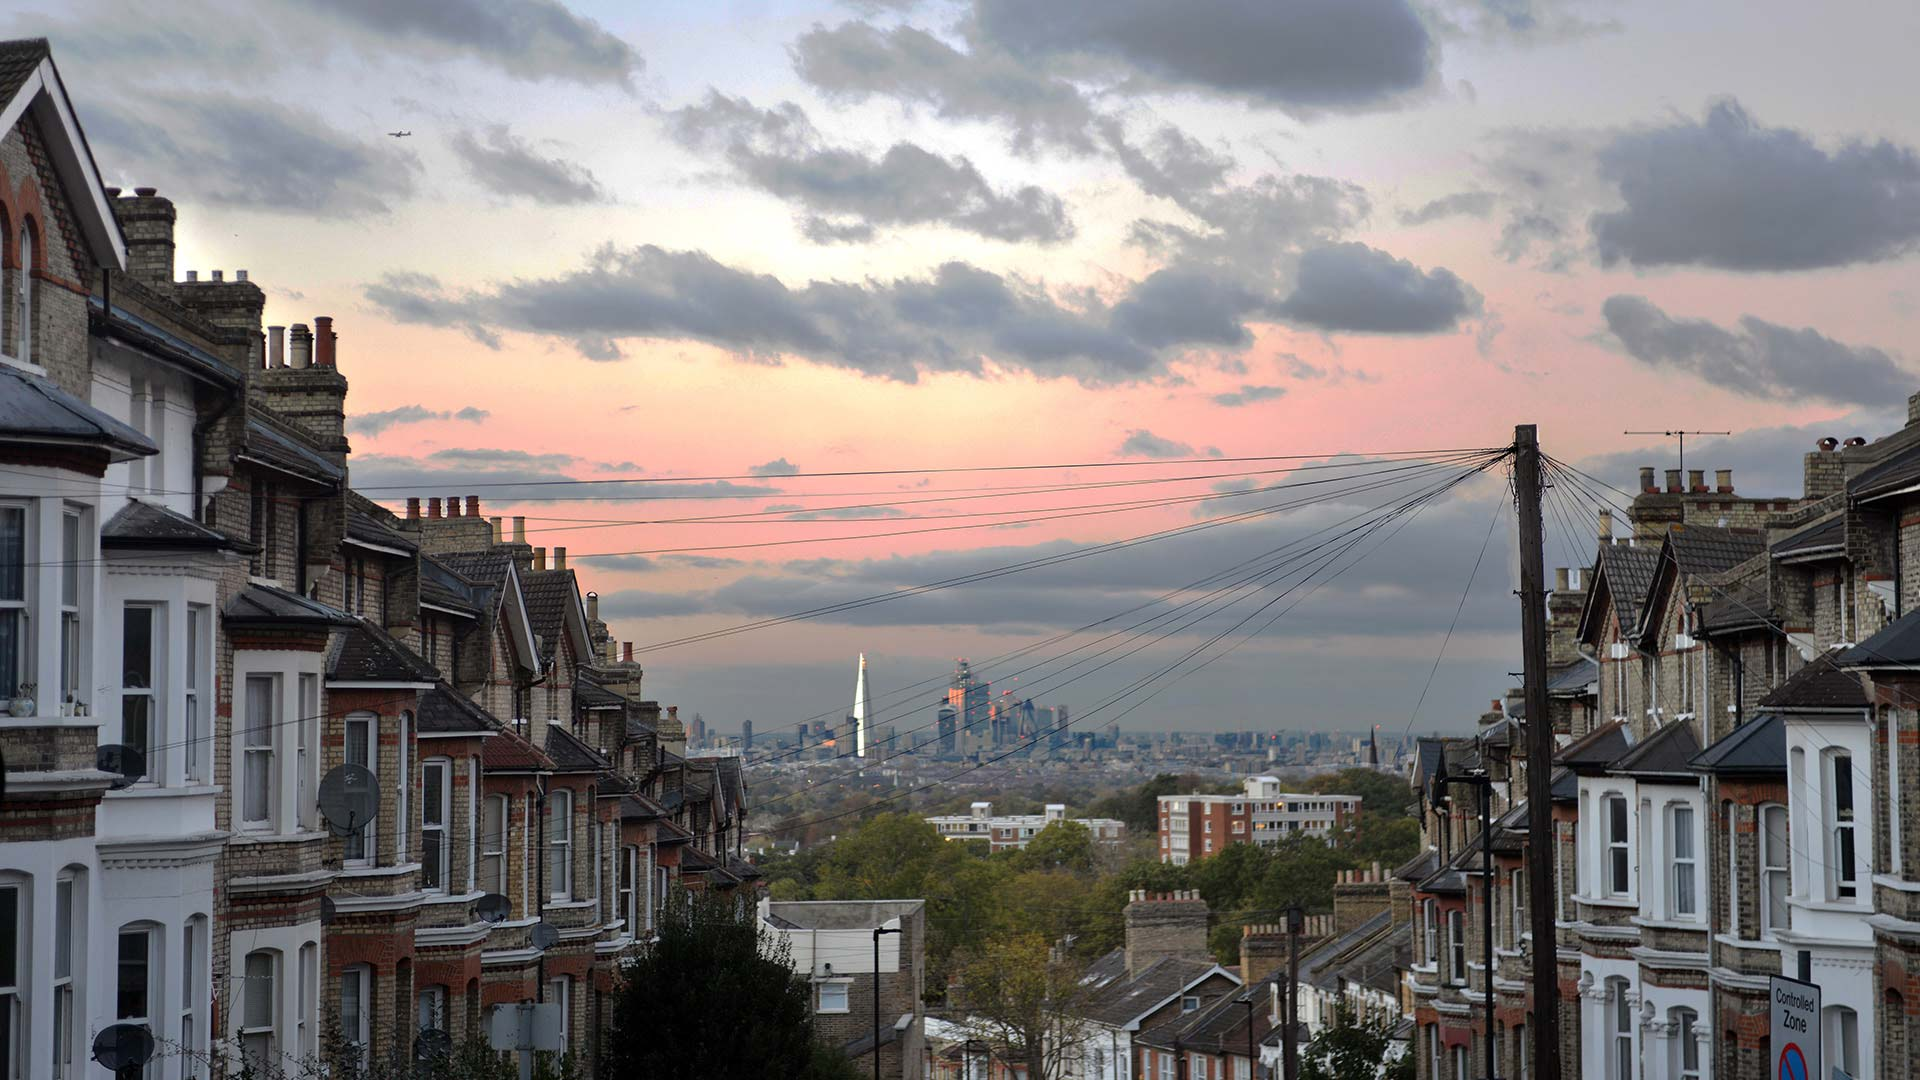 Panorama to illustrate dating in london